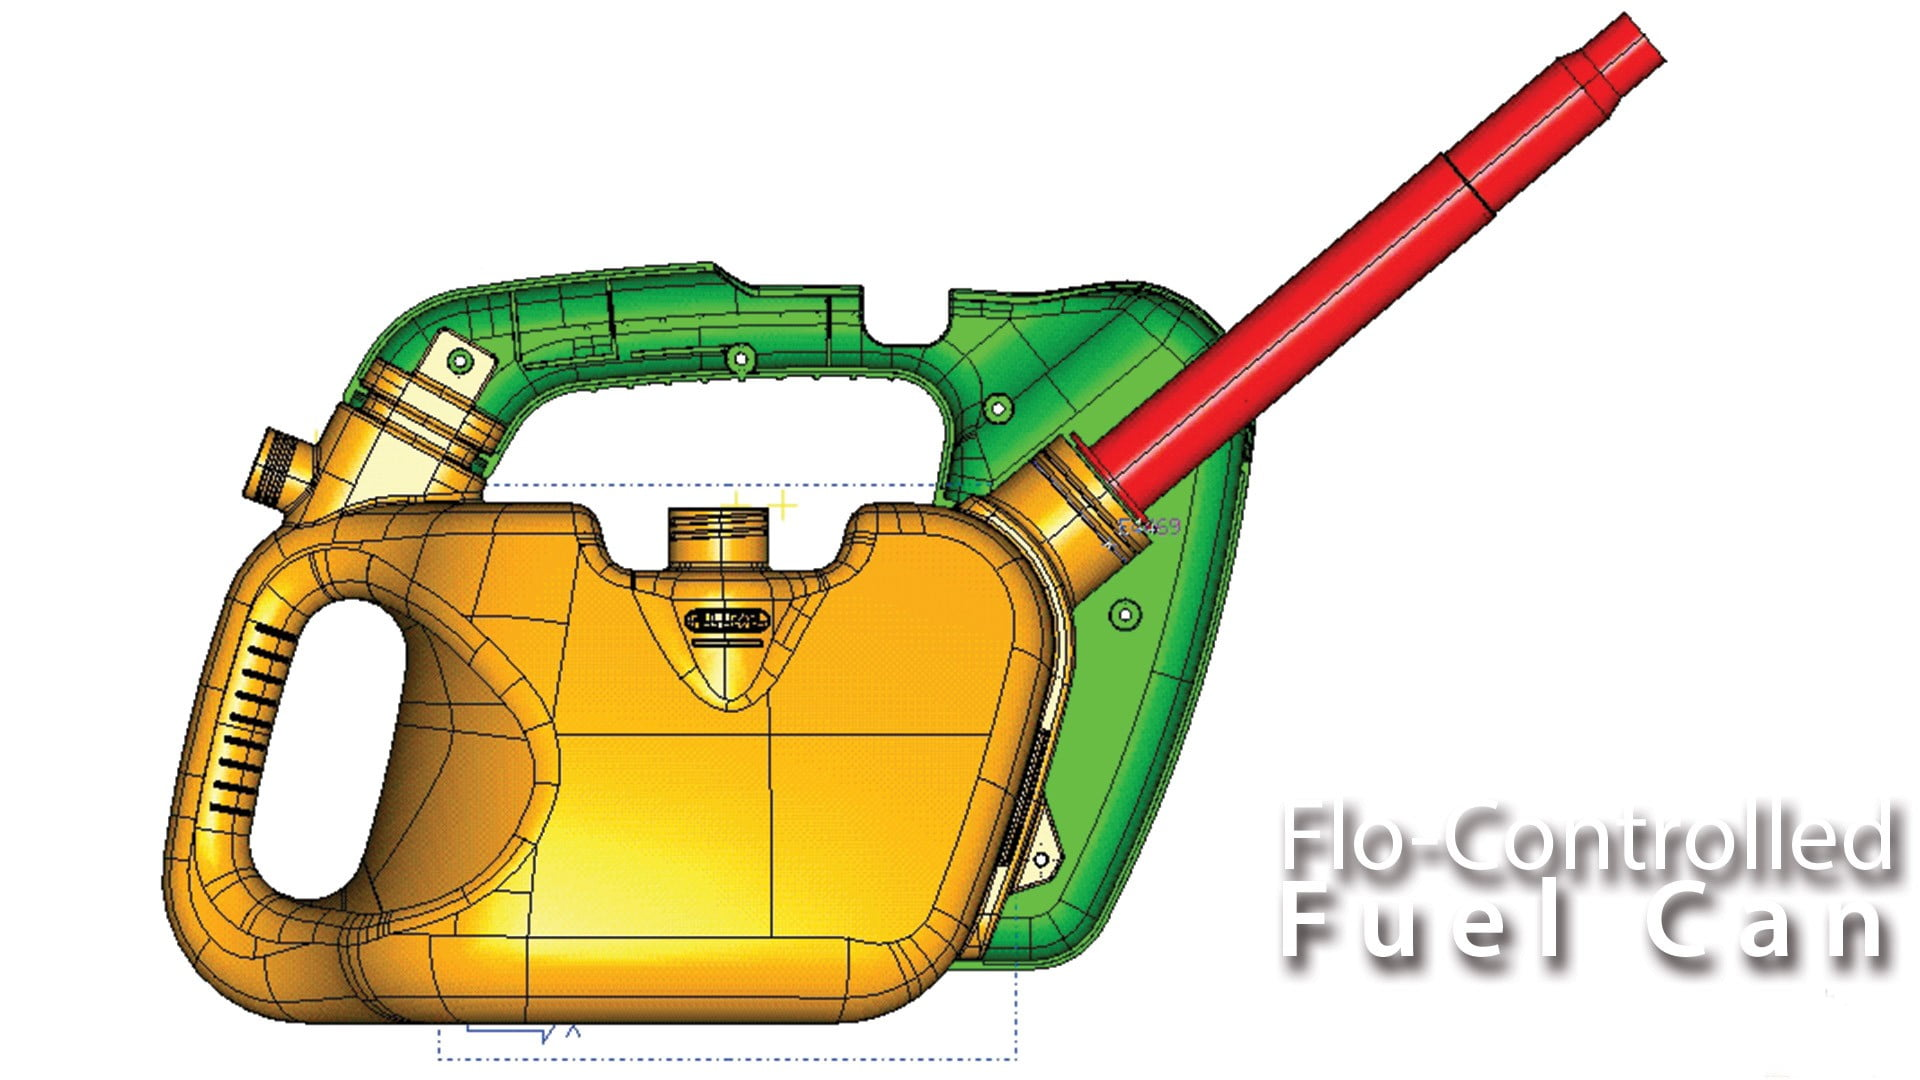 push-button-fuel-can-3d-drawing